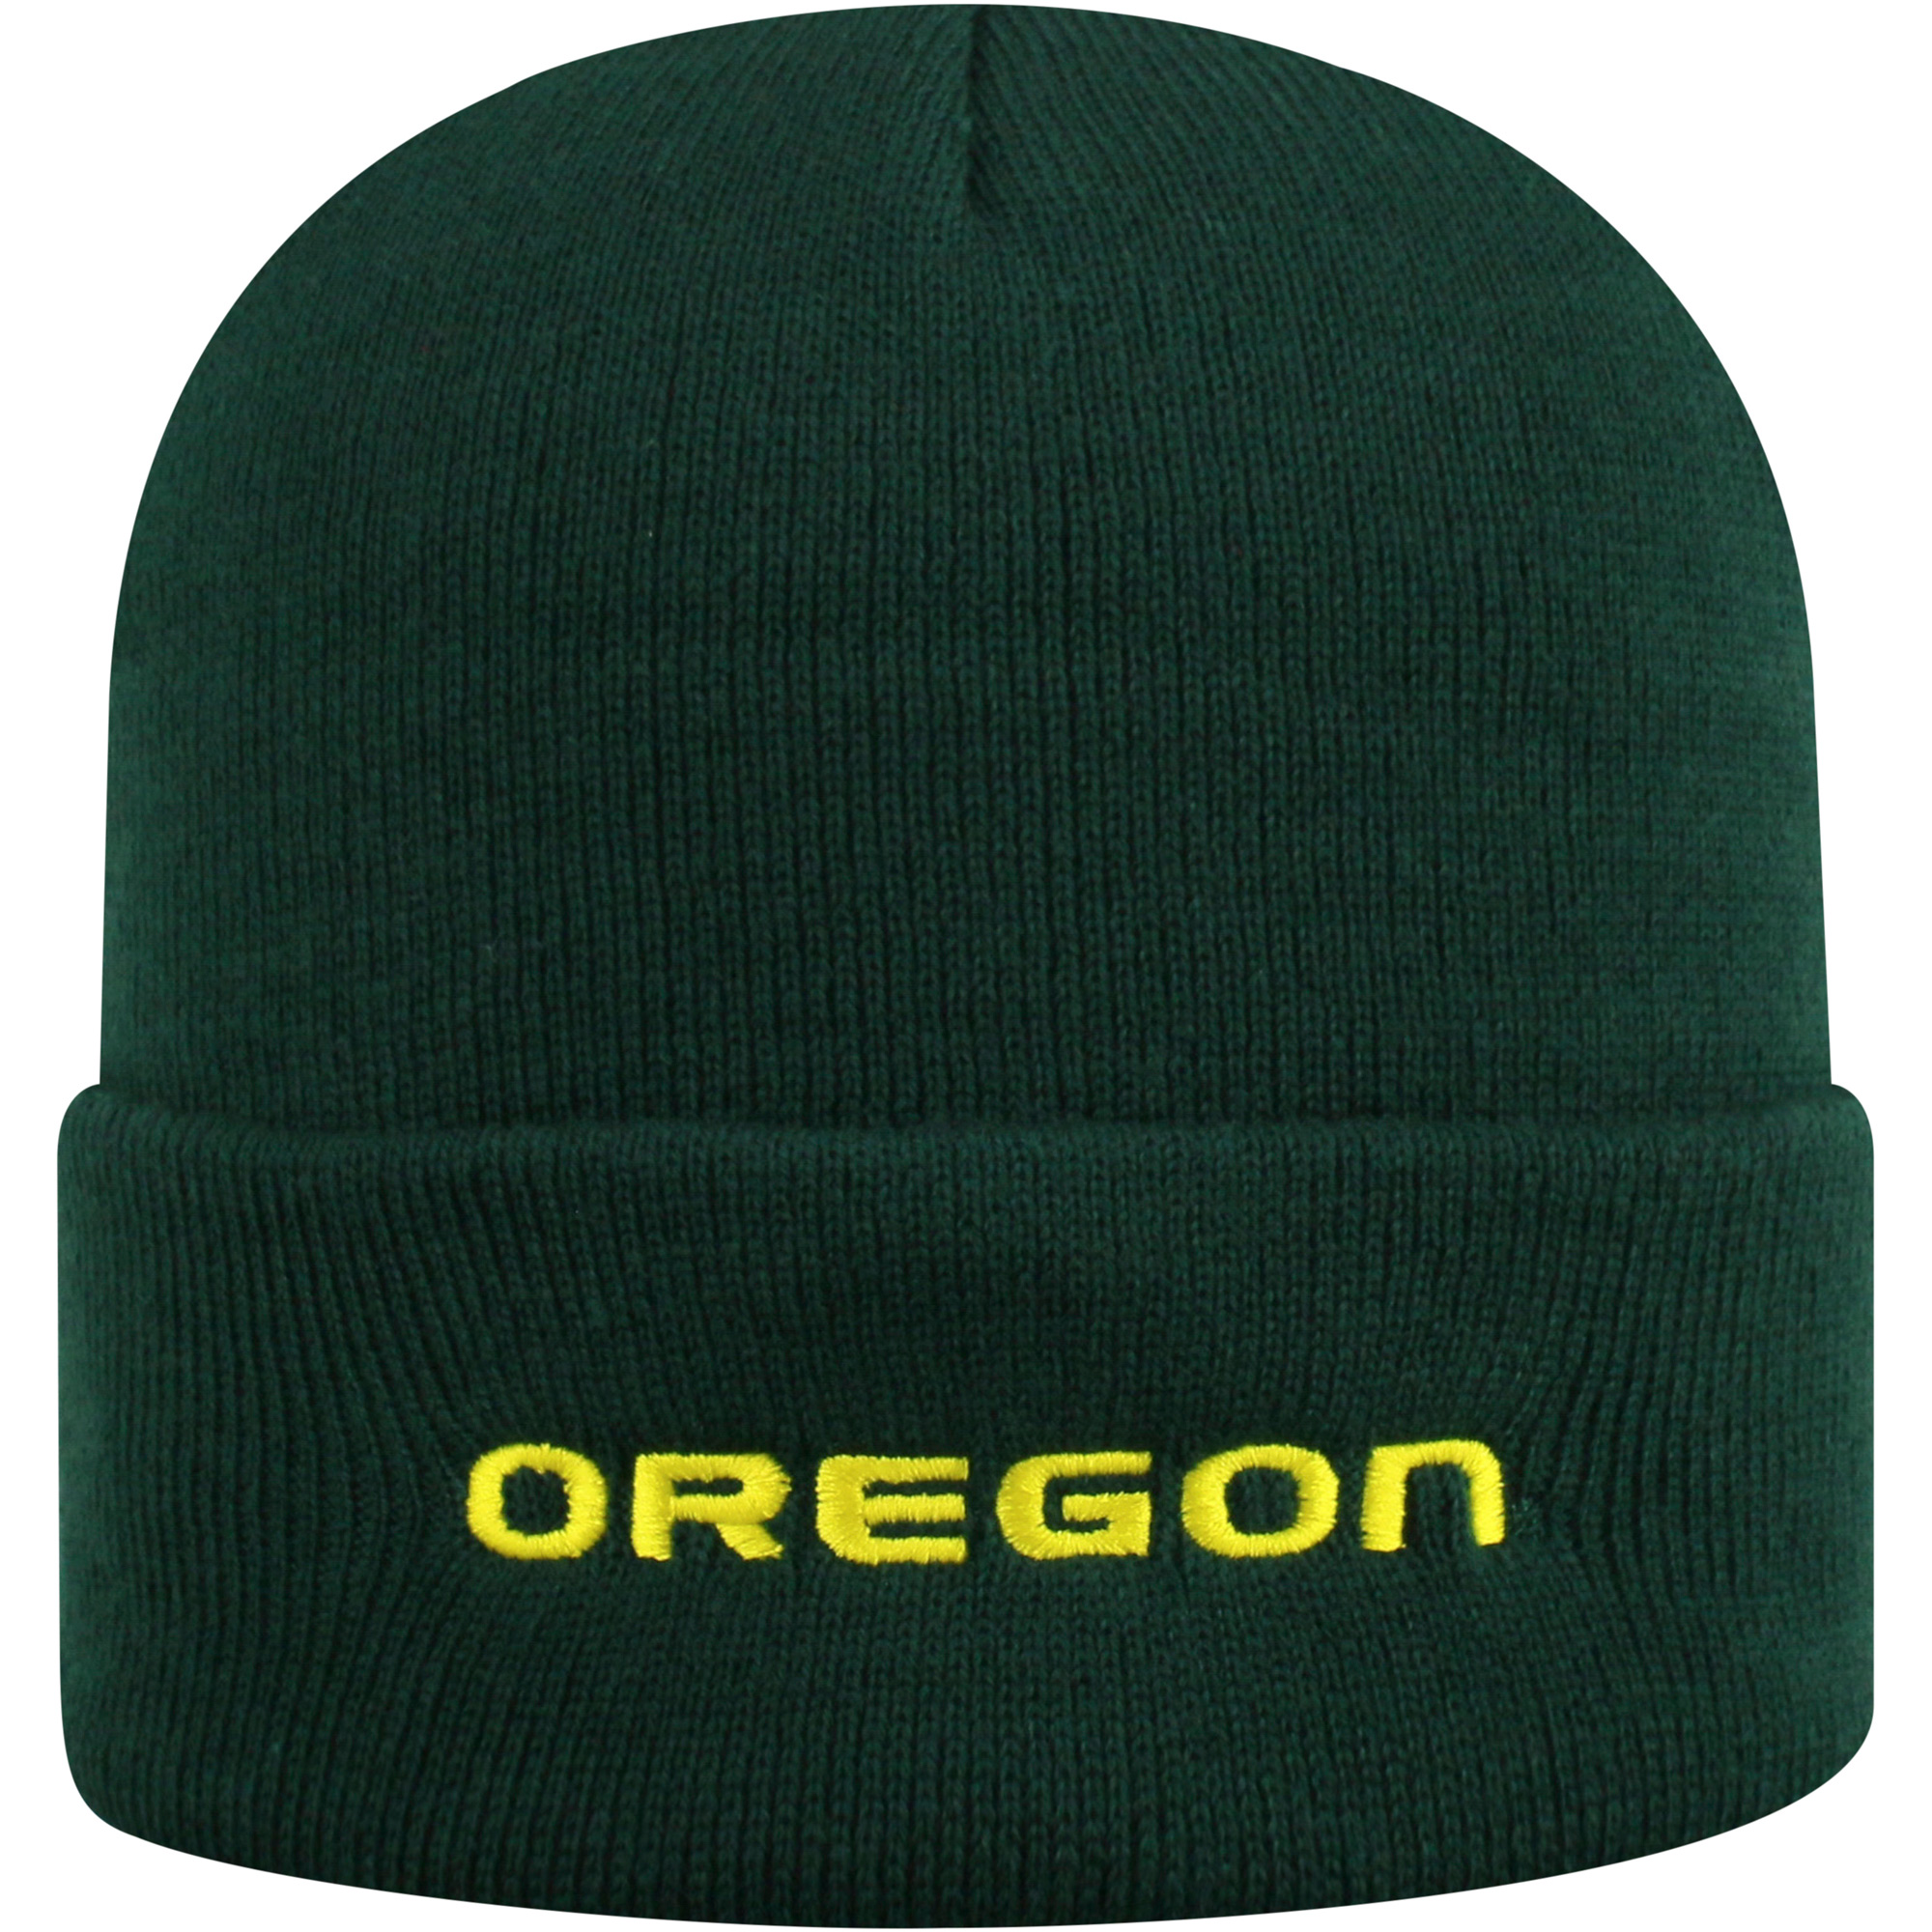 Men's Green Oregon Ducks Team Cuffed Knit Hat - OSFA